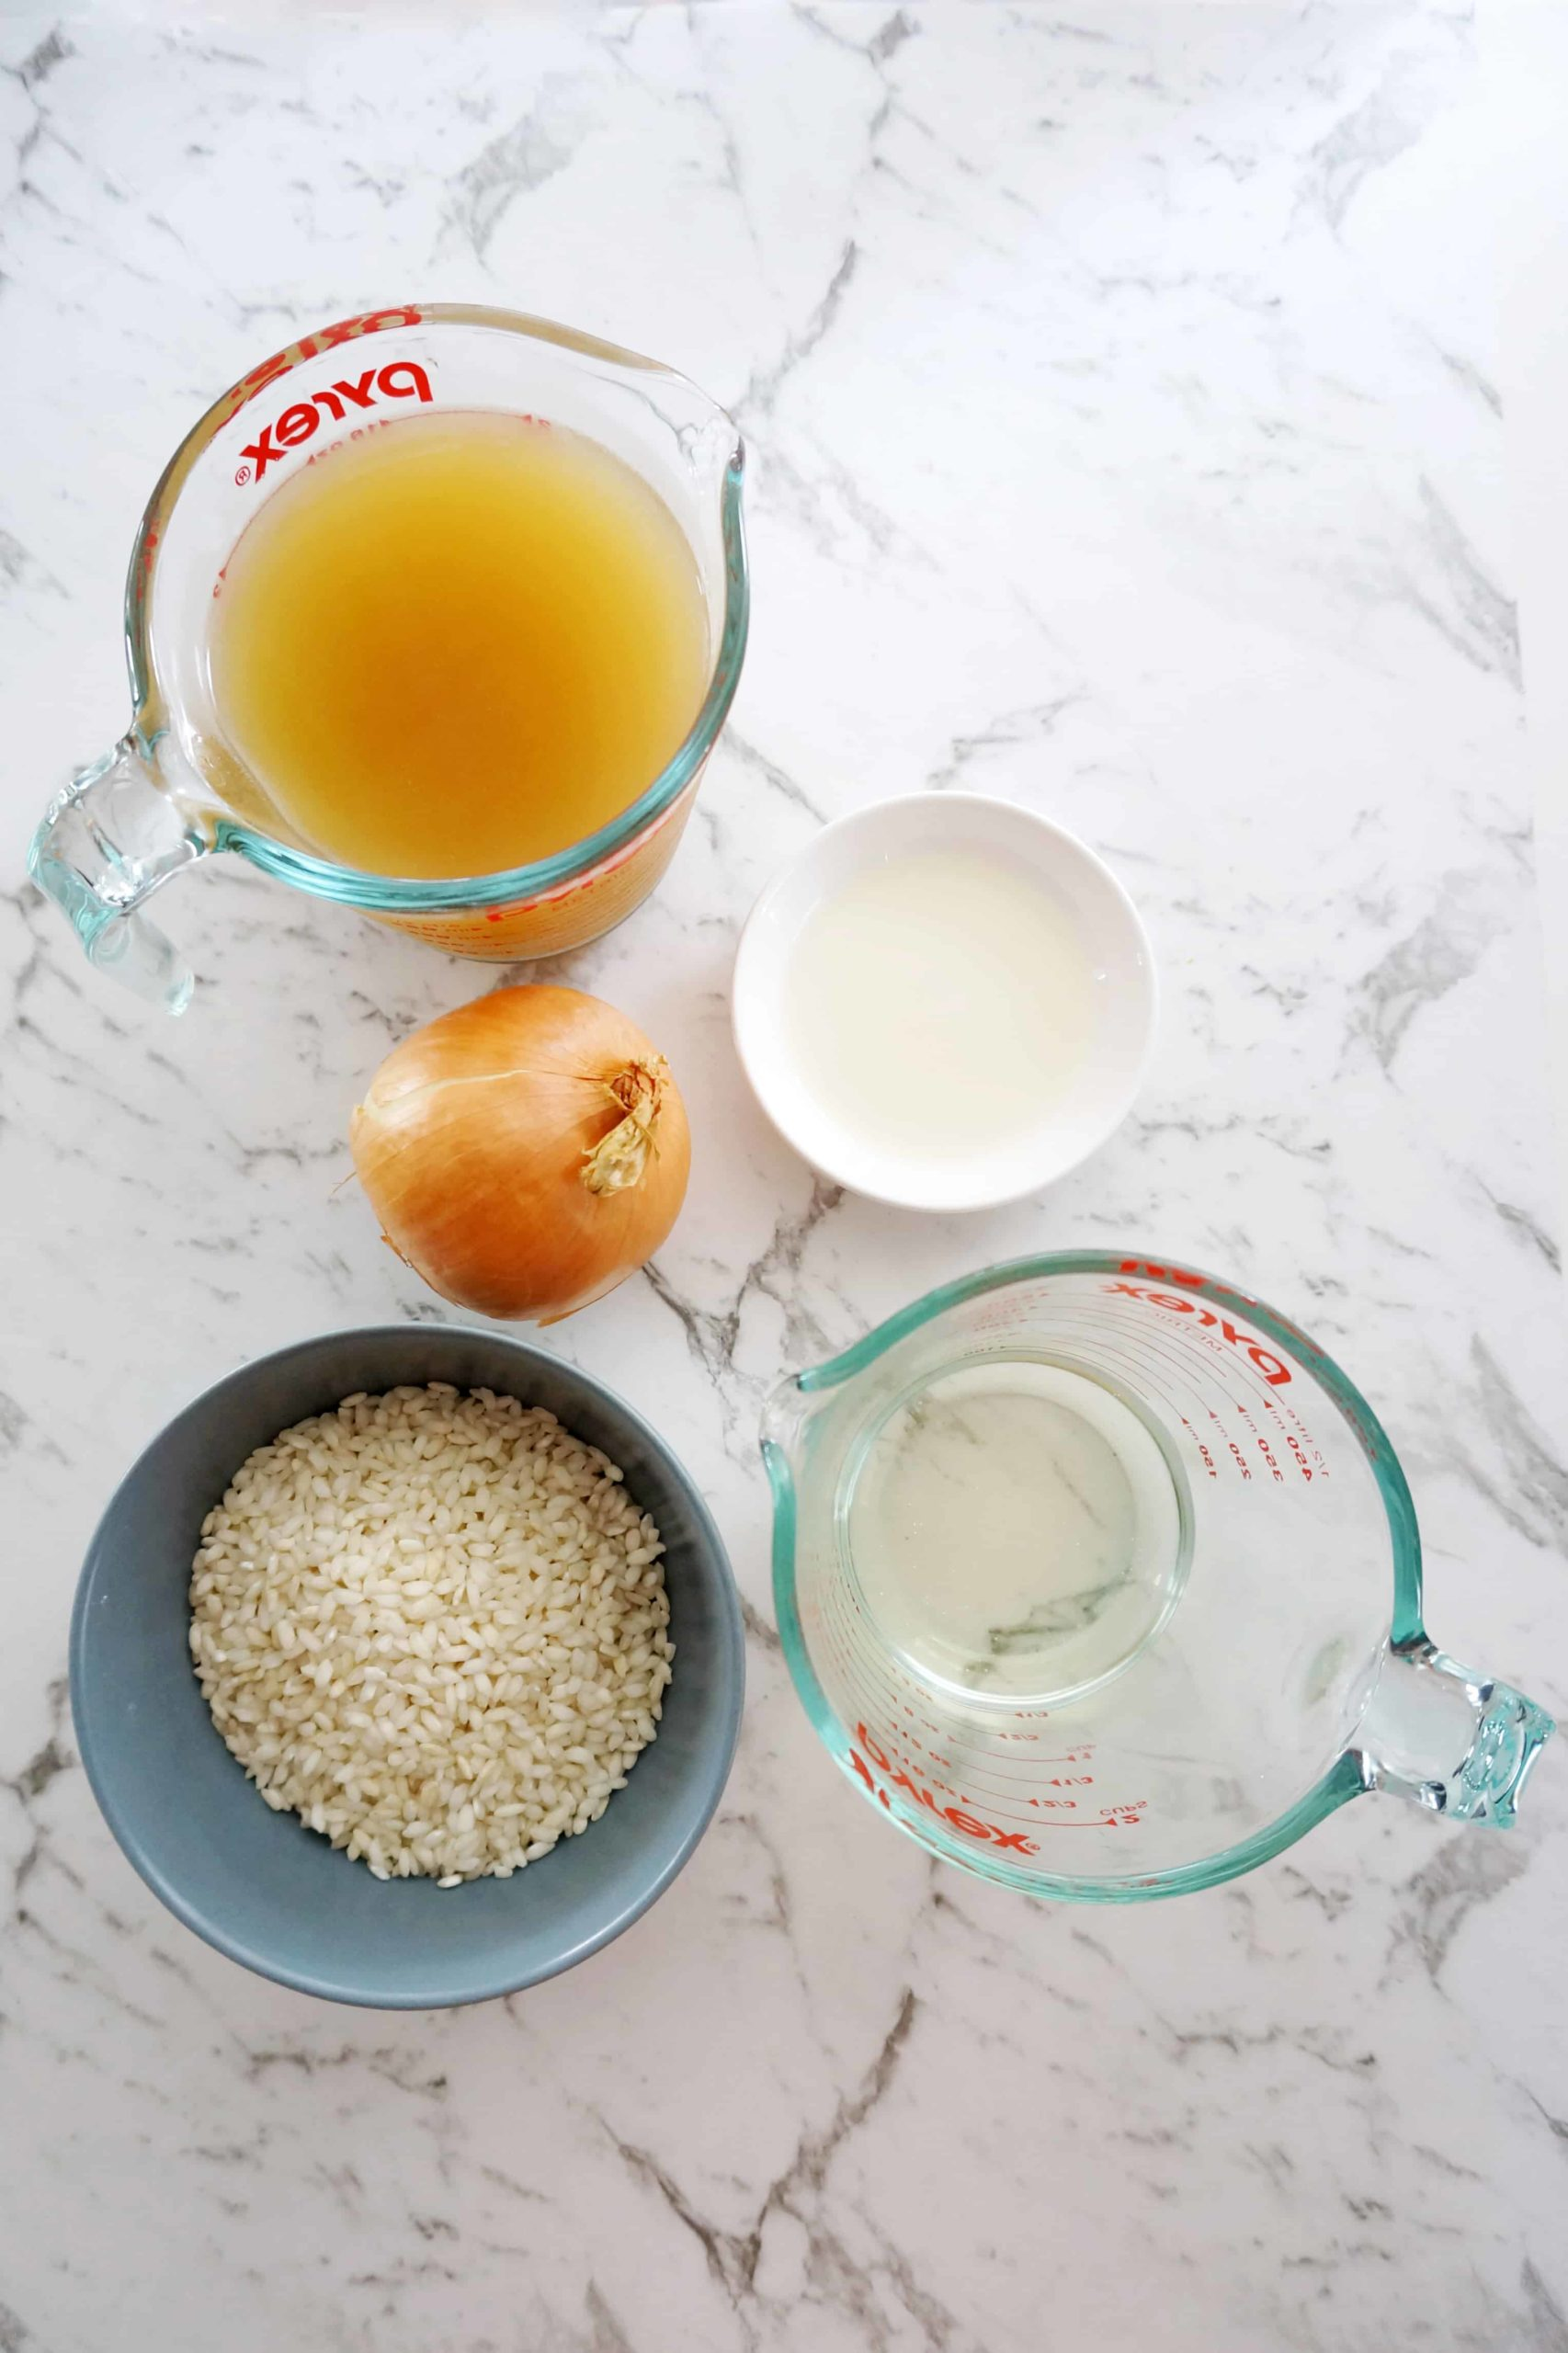 ingredients for a risotto base laid out- stock in a measuring jug, oil, an onion, arborio rice in a bowl and white win in a jug